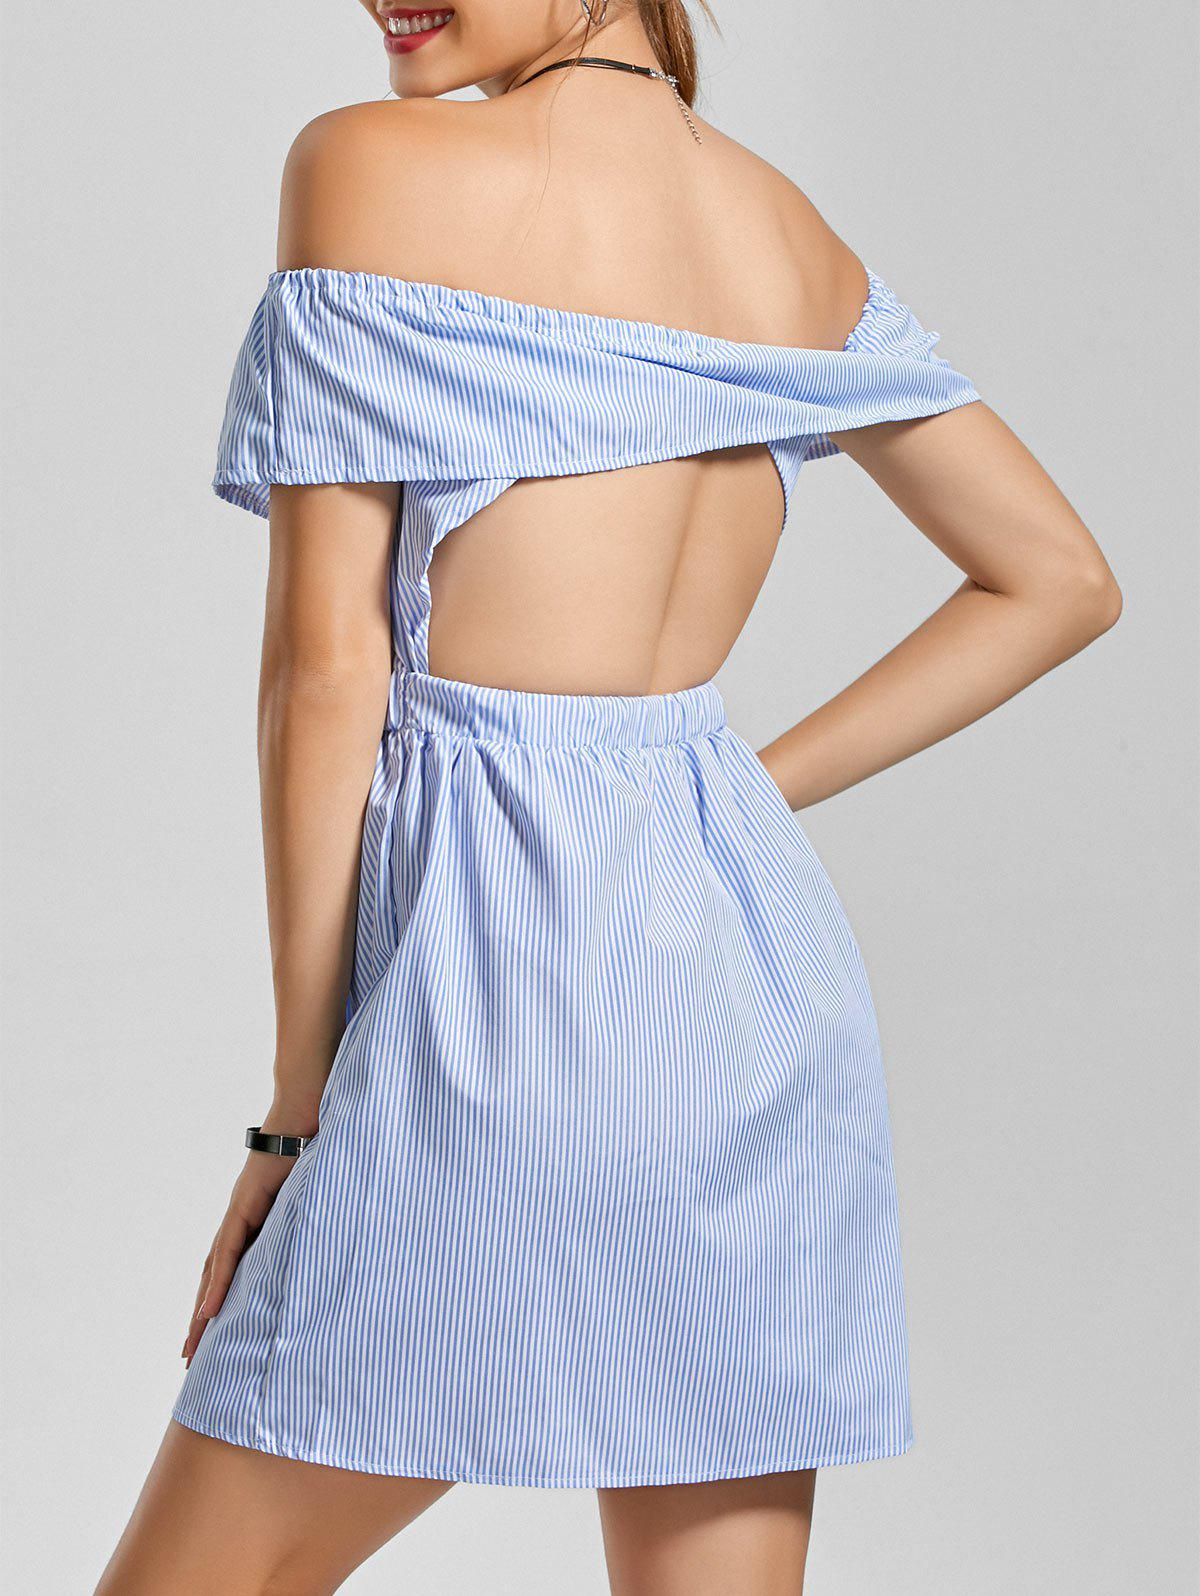 Off The Shoulder Stripe Ruffle Cut Out Dress - Bleu clair S